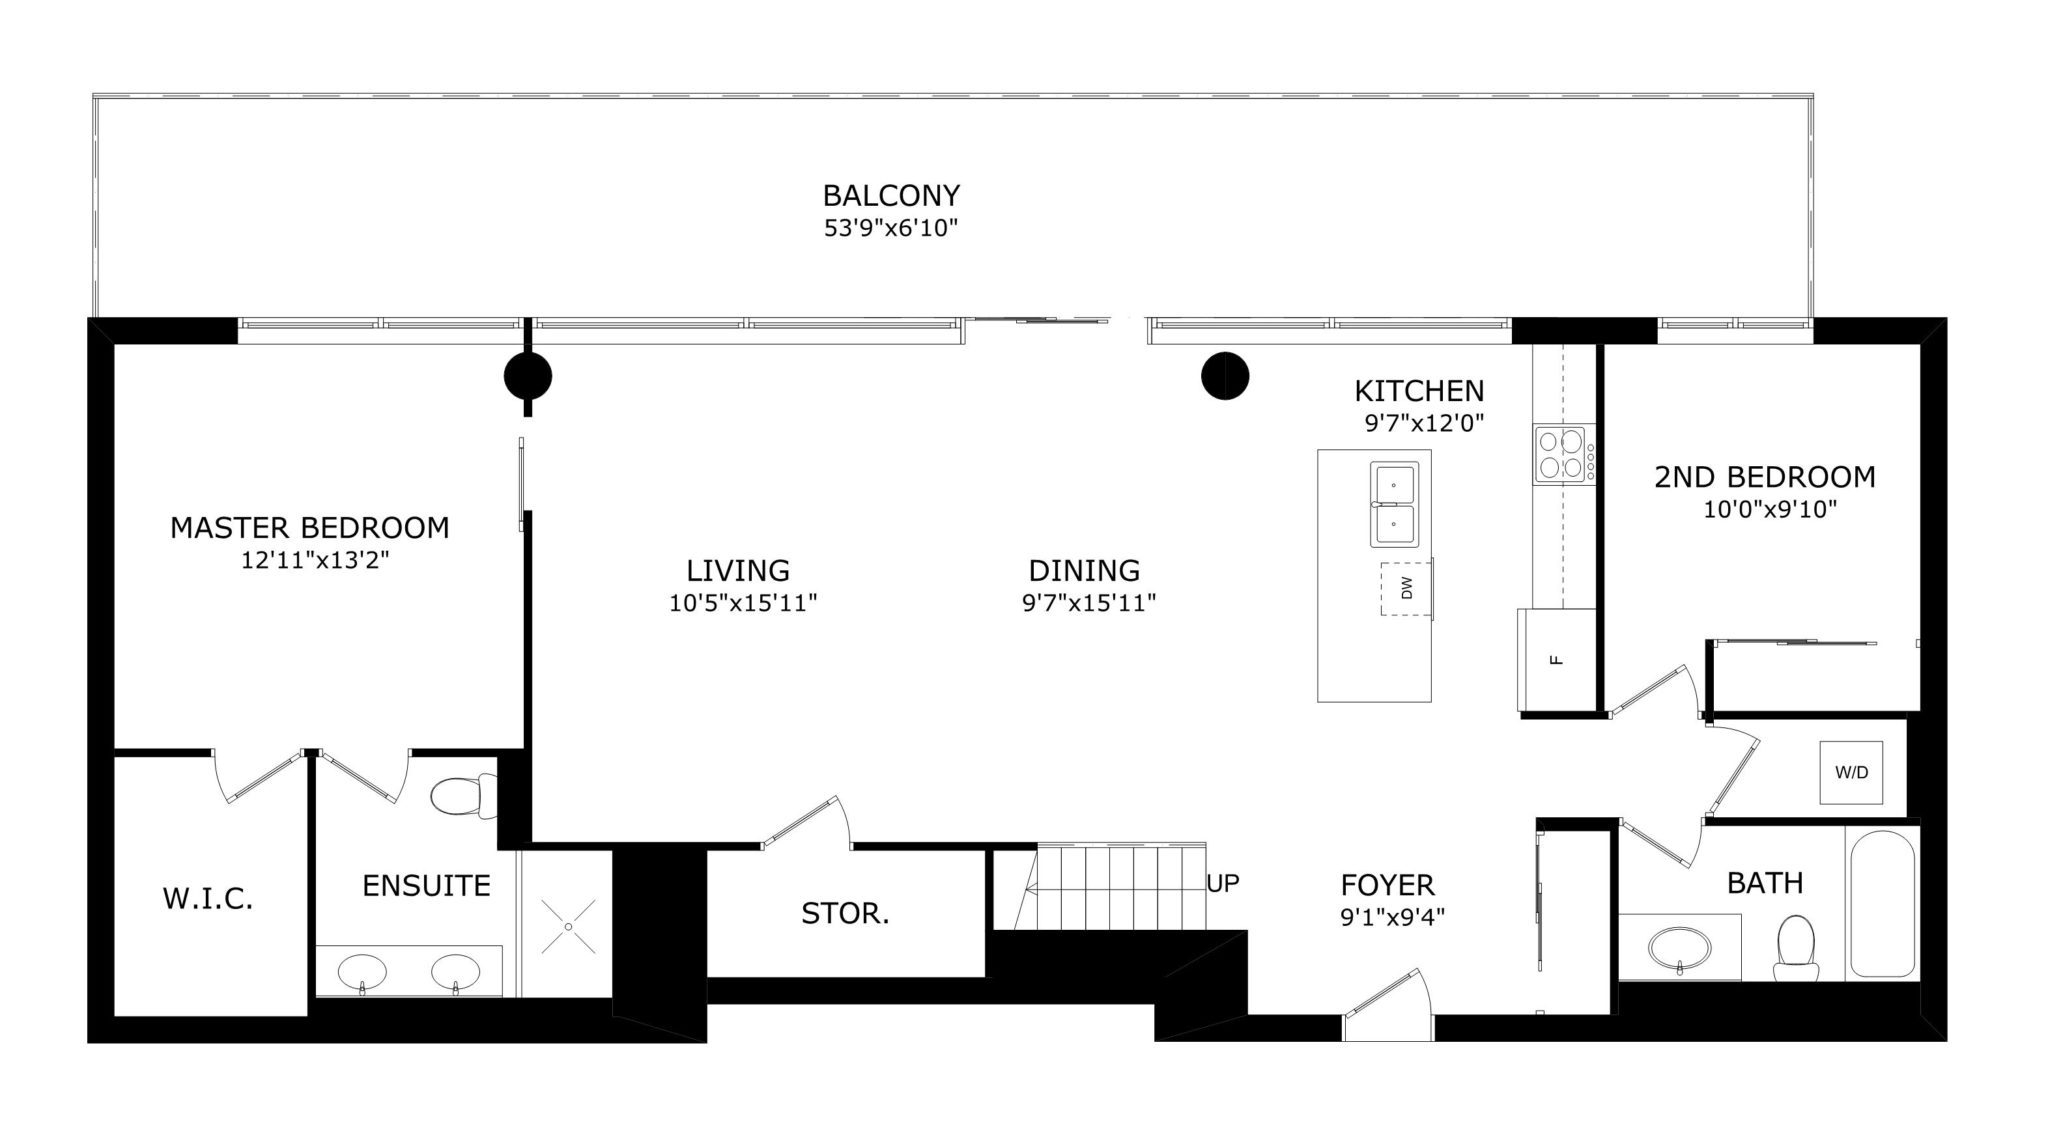 Floor Plan of penthouse condo